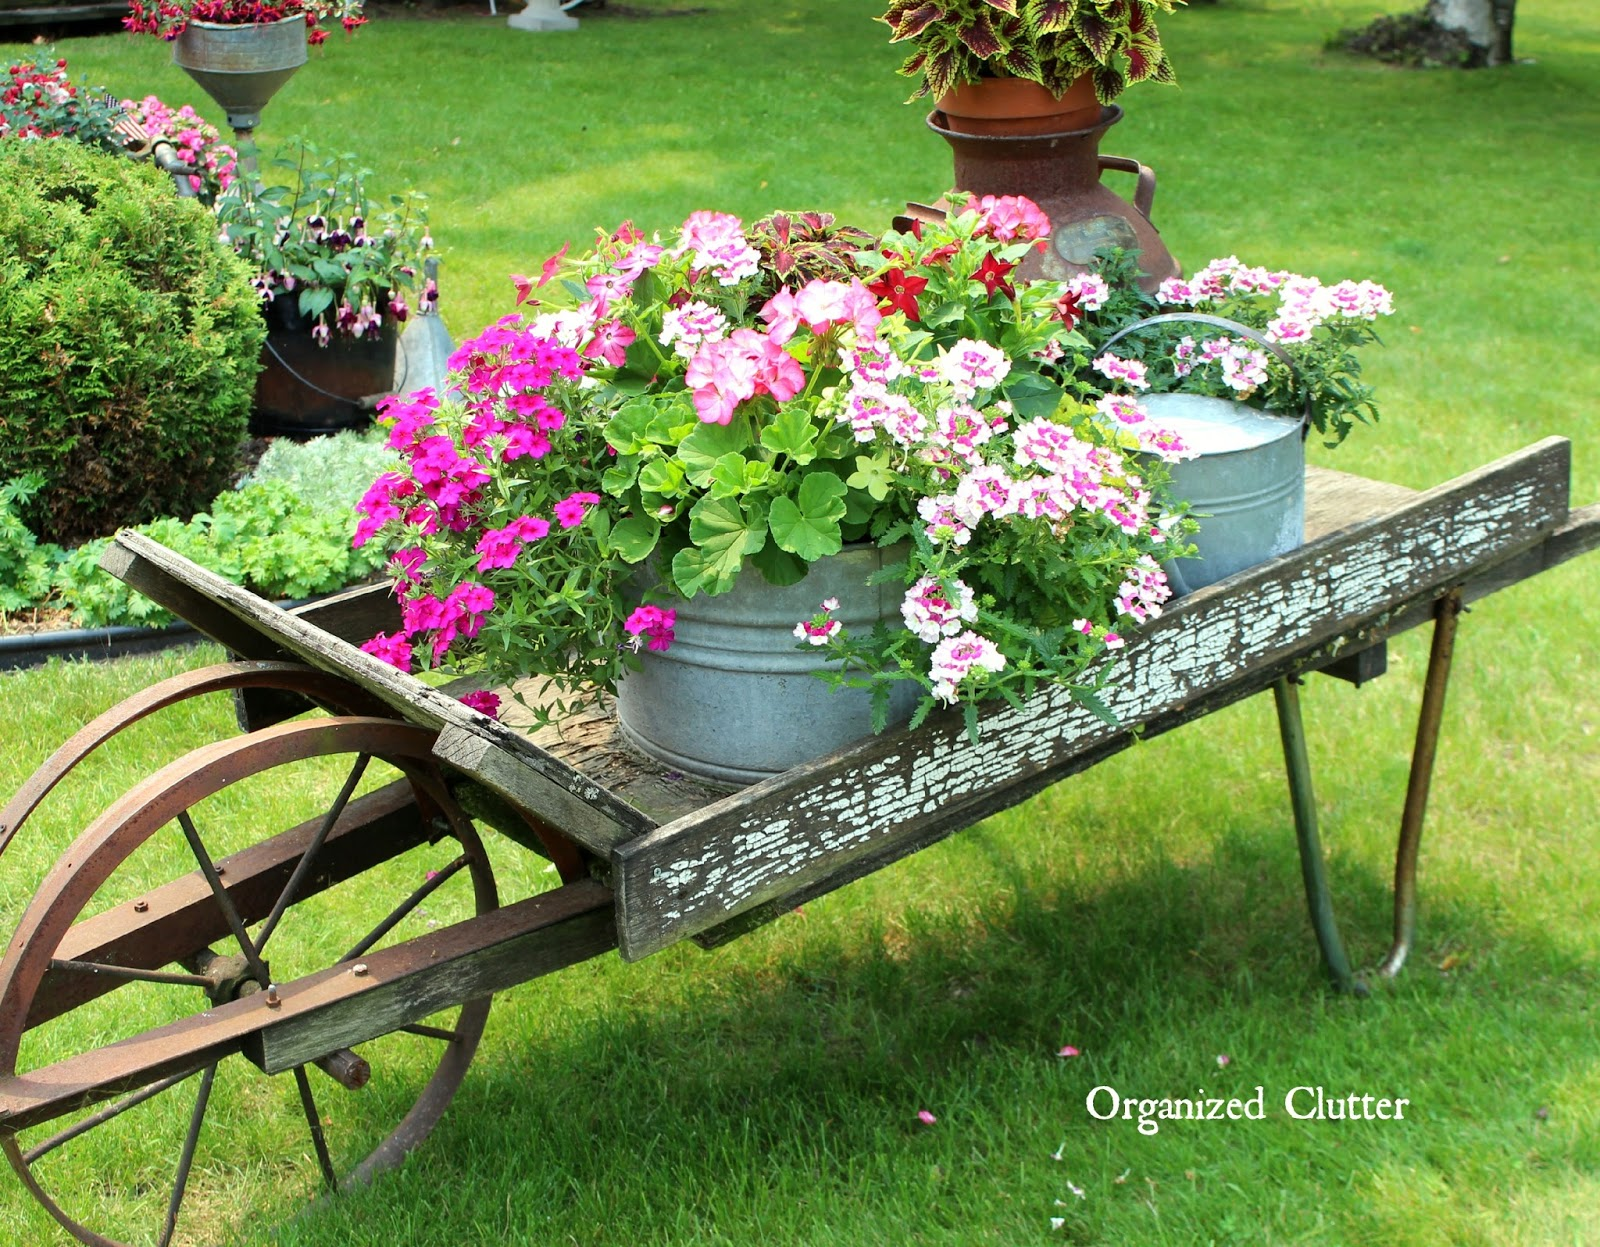 Rustic garden wheelbarrow 2015 organized clutter for Rustic outdoor decorating